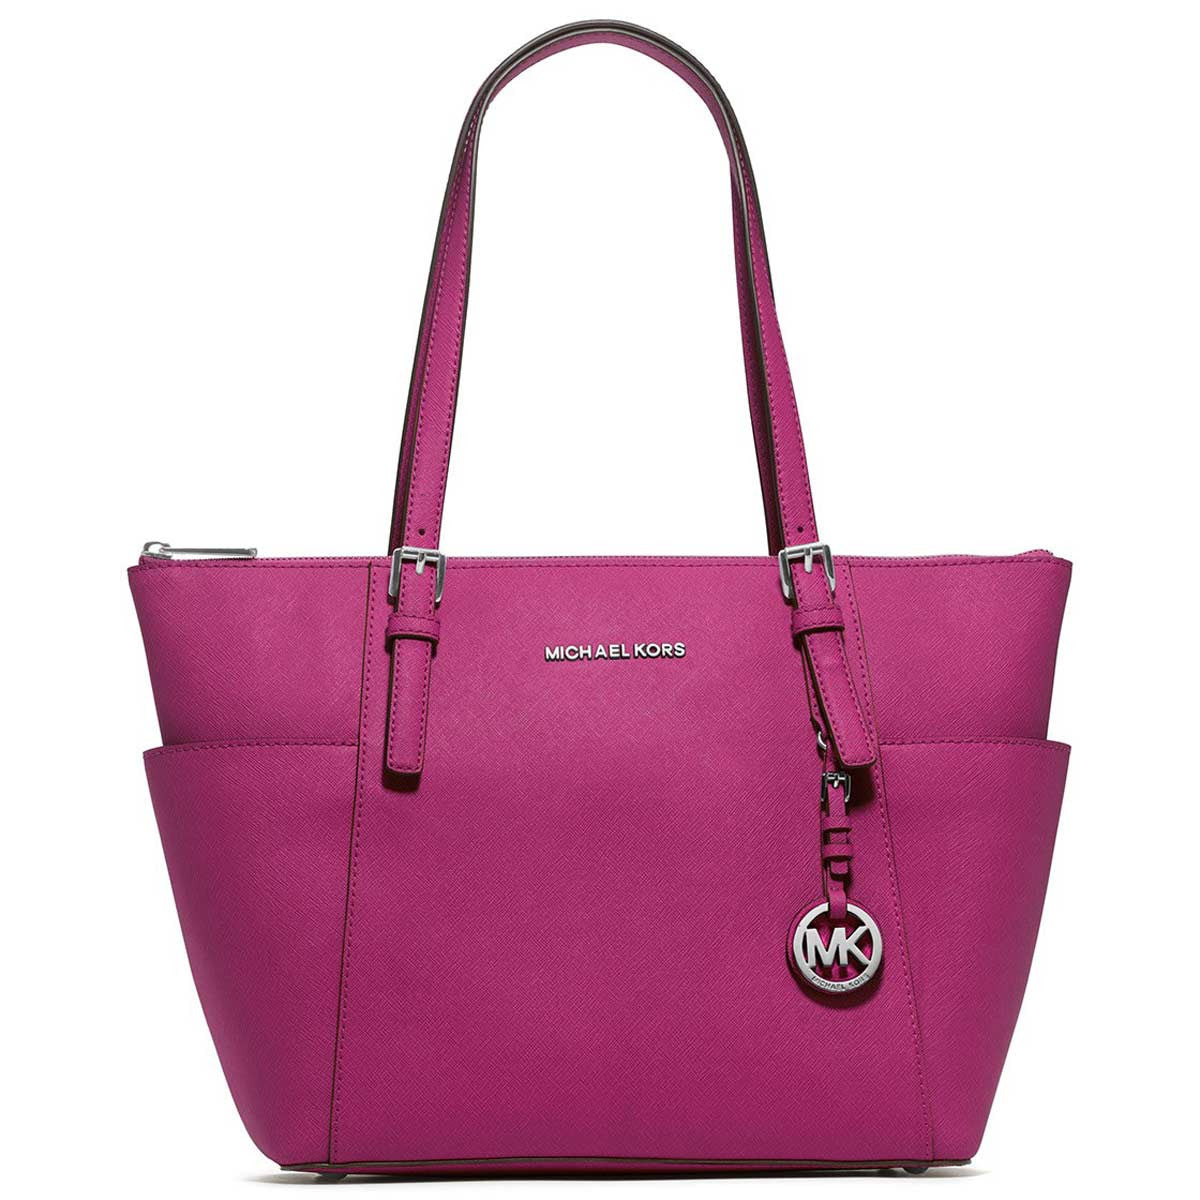 Michael Kors 30F2STTT8L-670 Women's Jet Set Top-Zip Deep Pink Cow Leather Tote